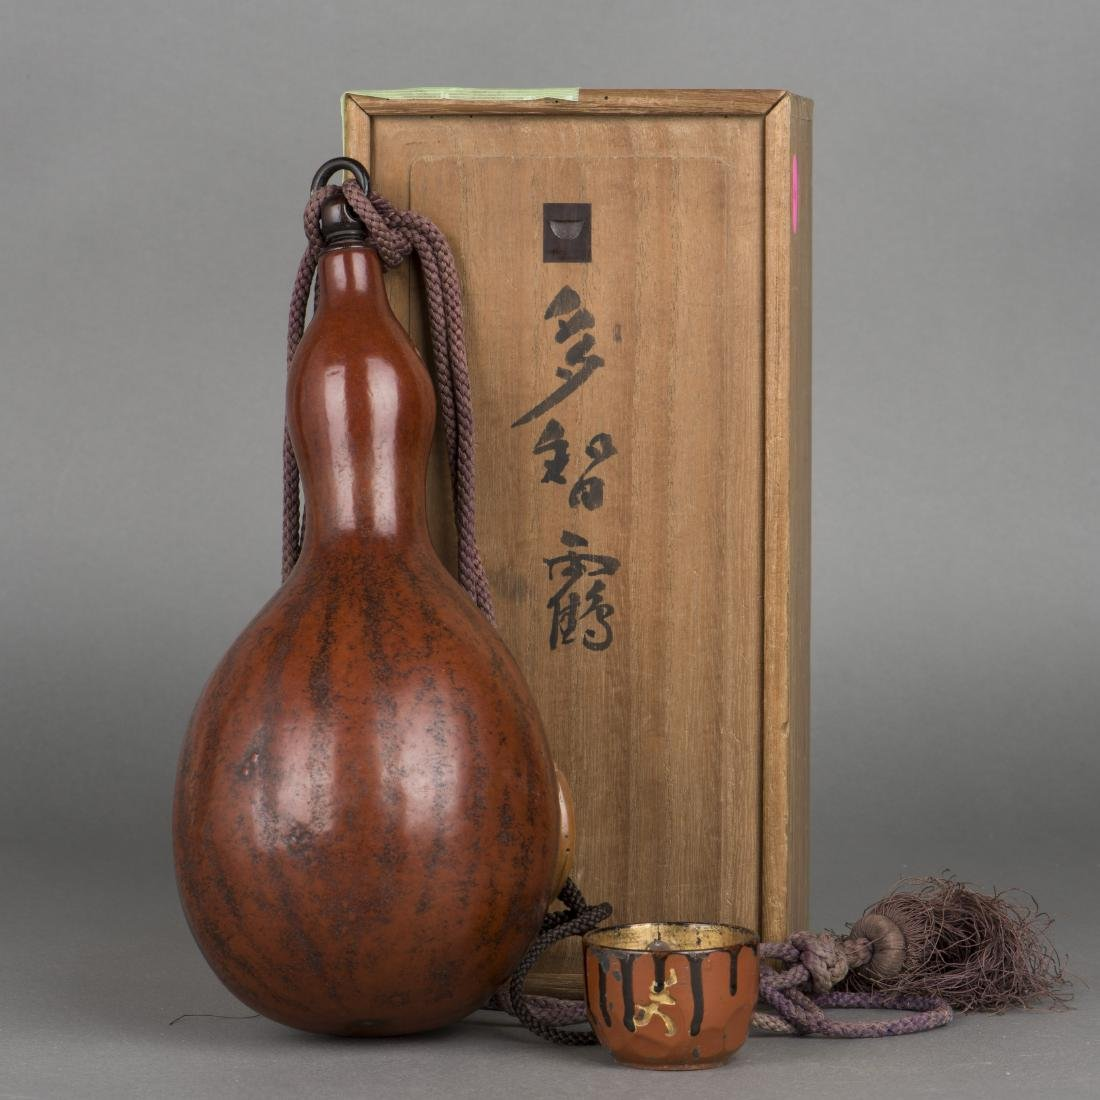 A JAPANESE GOURD, 19TH CENTURY